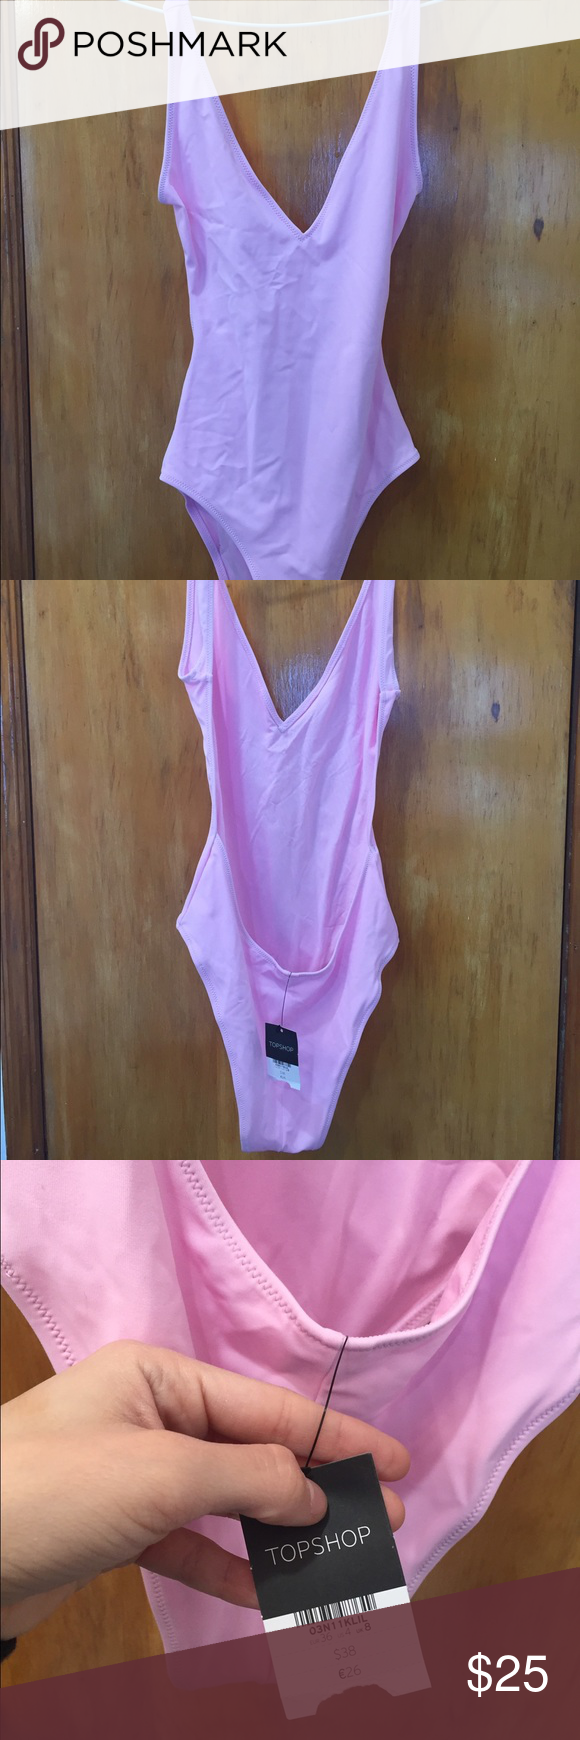 Topshop one piece swimsuit Brand new never worn one piece, baby pink color size US 4 Topshop Swim One Pieces